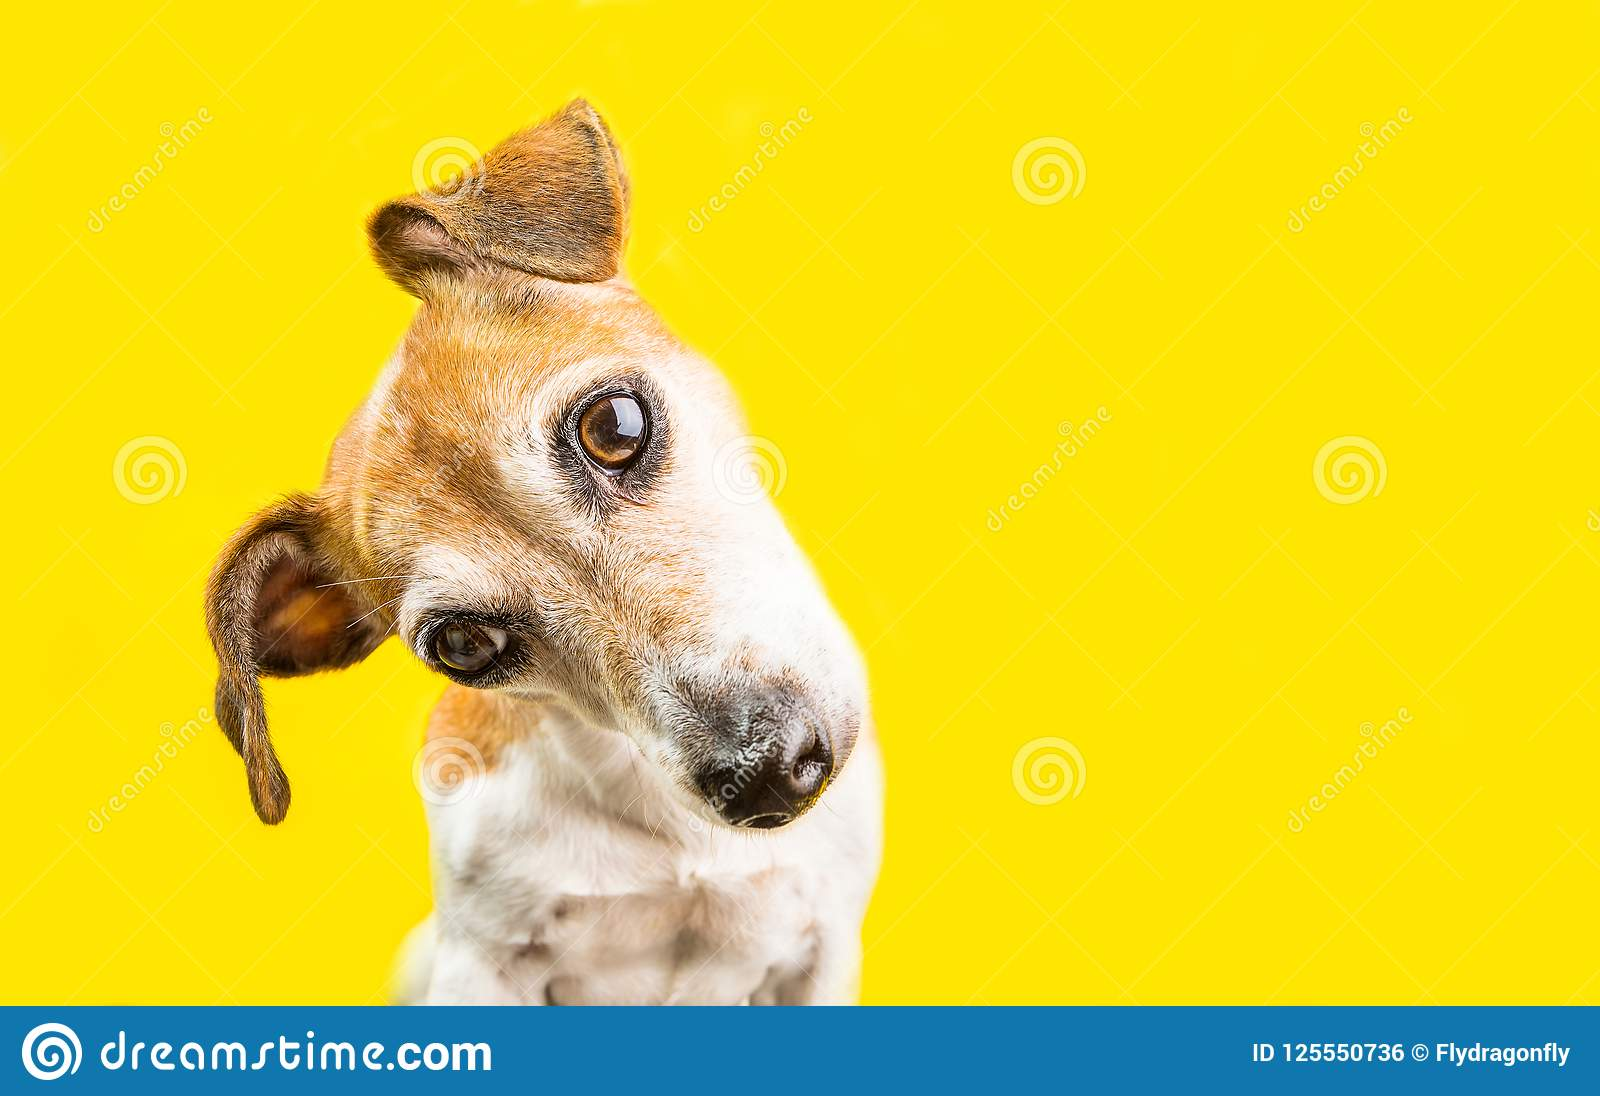 Asking surprised curious lovely dog Jack Russell terrier portrait on yellow background. Bright emotions